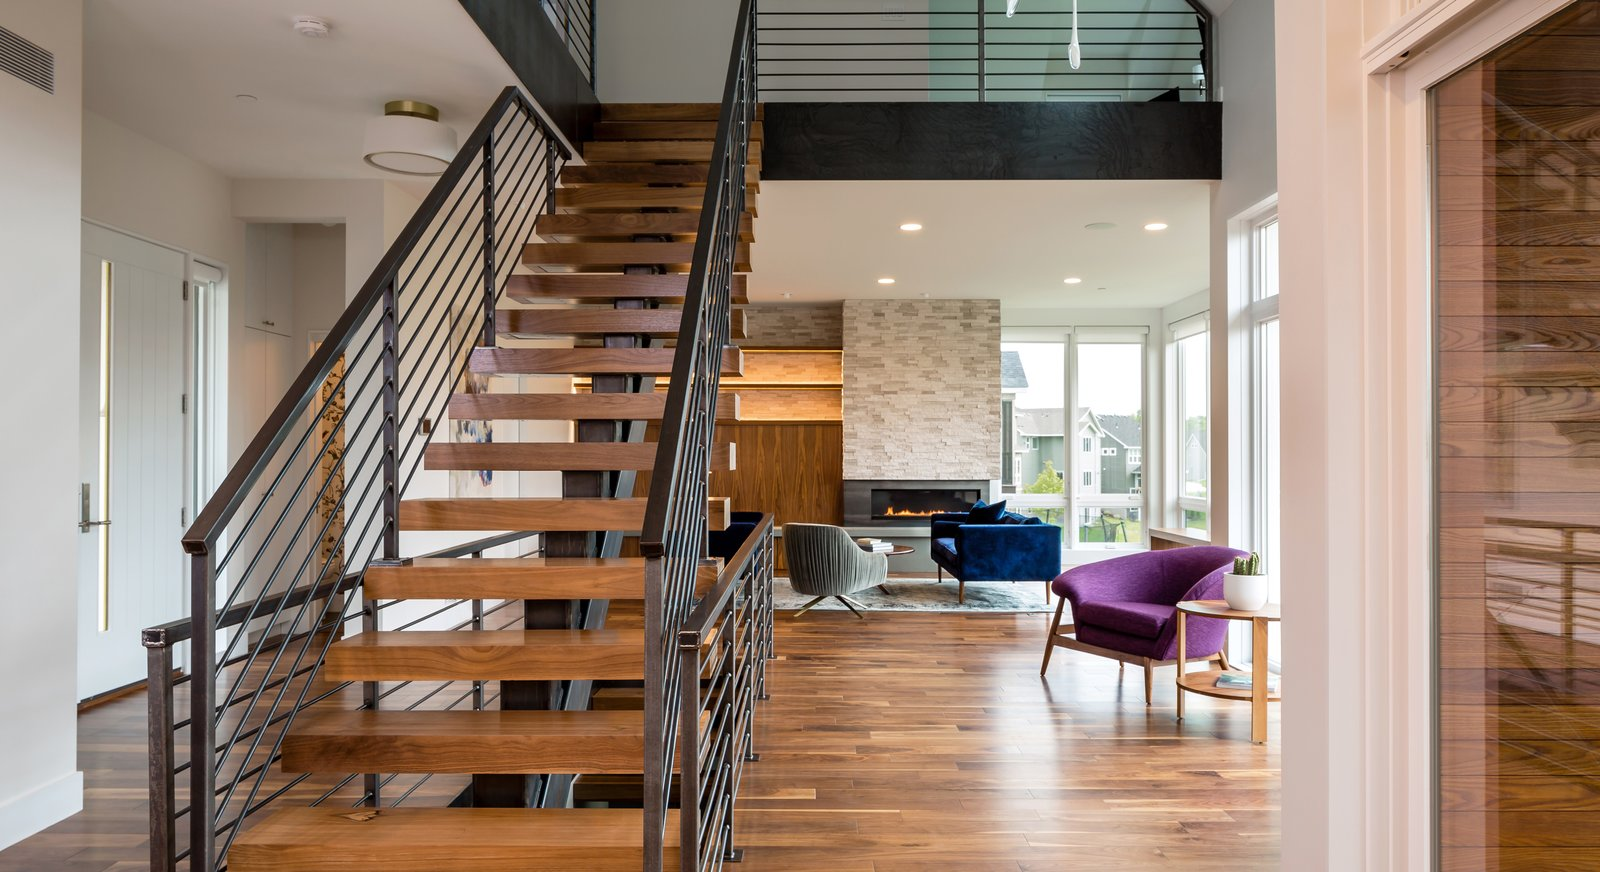 Medium Hardwood, Chair, Staircase, Gas Burning, Sofa, Corner, Wood, Metal, and Metal  Best Staircase Medium Hardwood Sofa Metal Photos from Credit River Residence